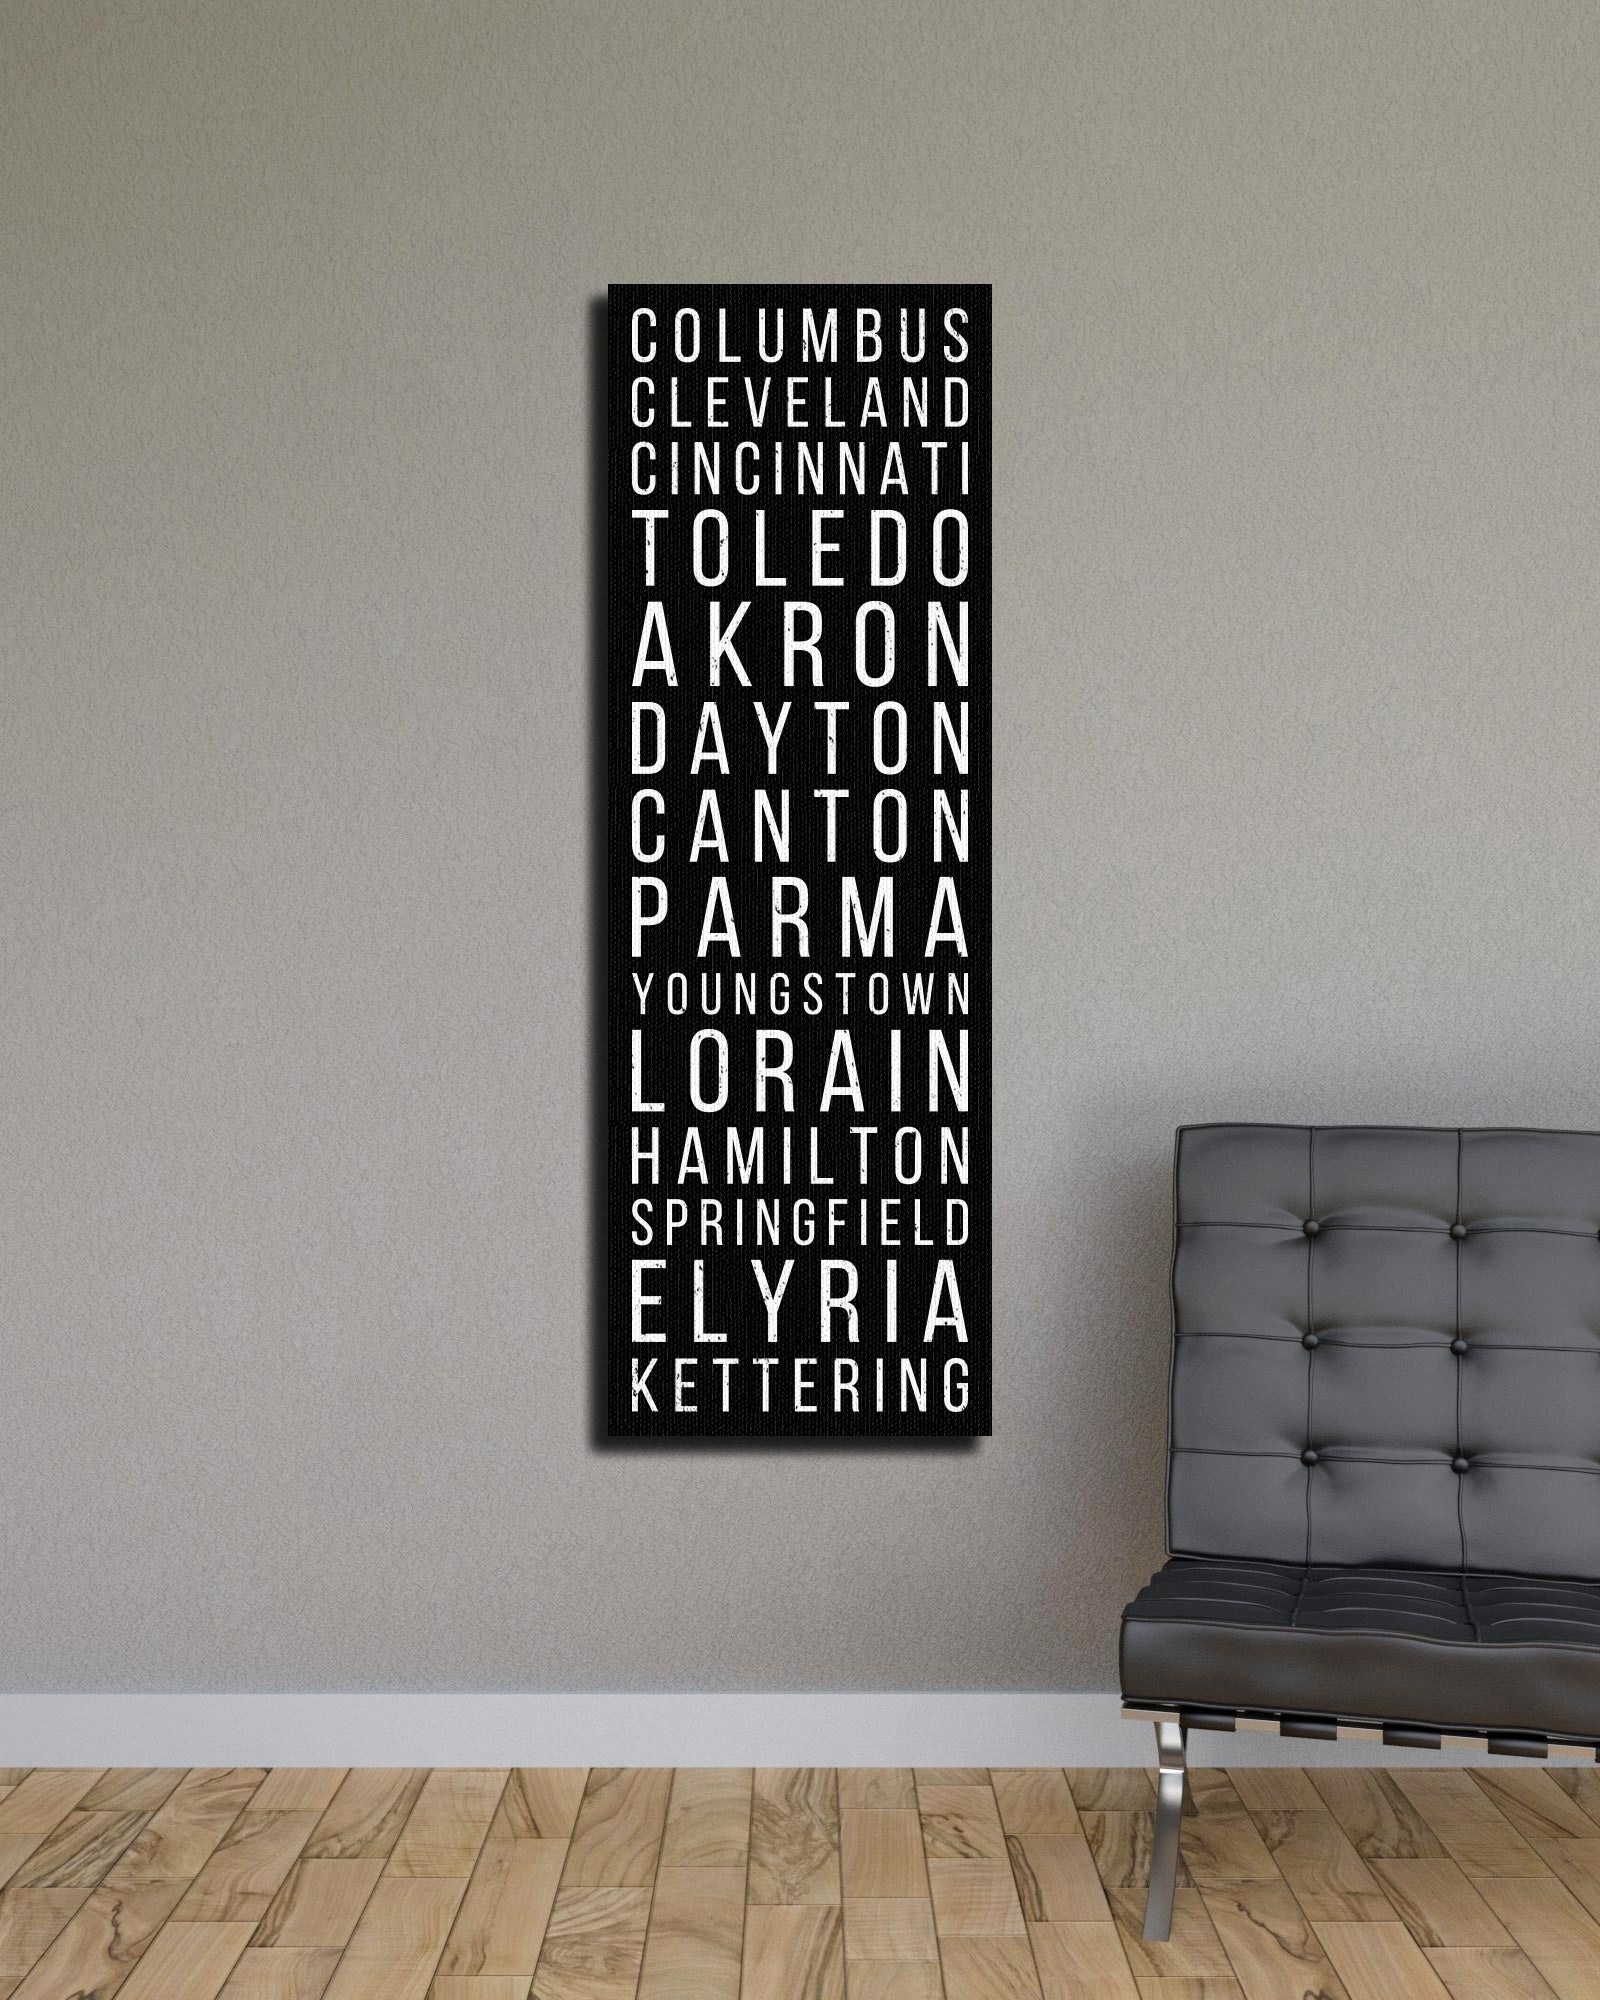 Ohio Columbus Cleveland Cincinnati Bus Scroll Subway Canvas Print